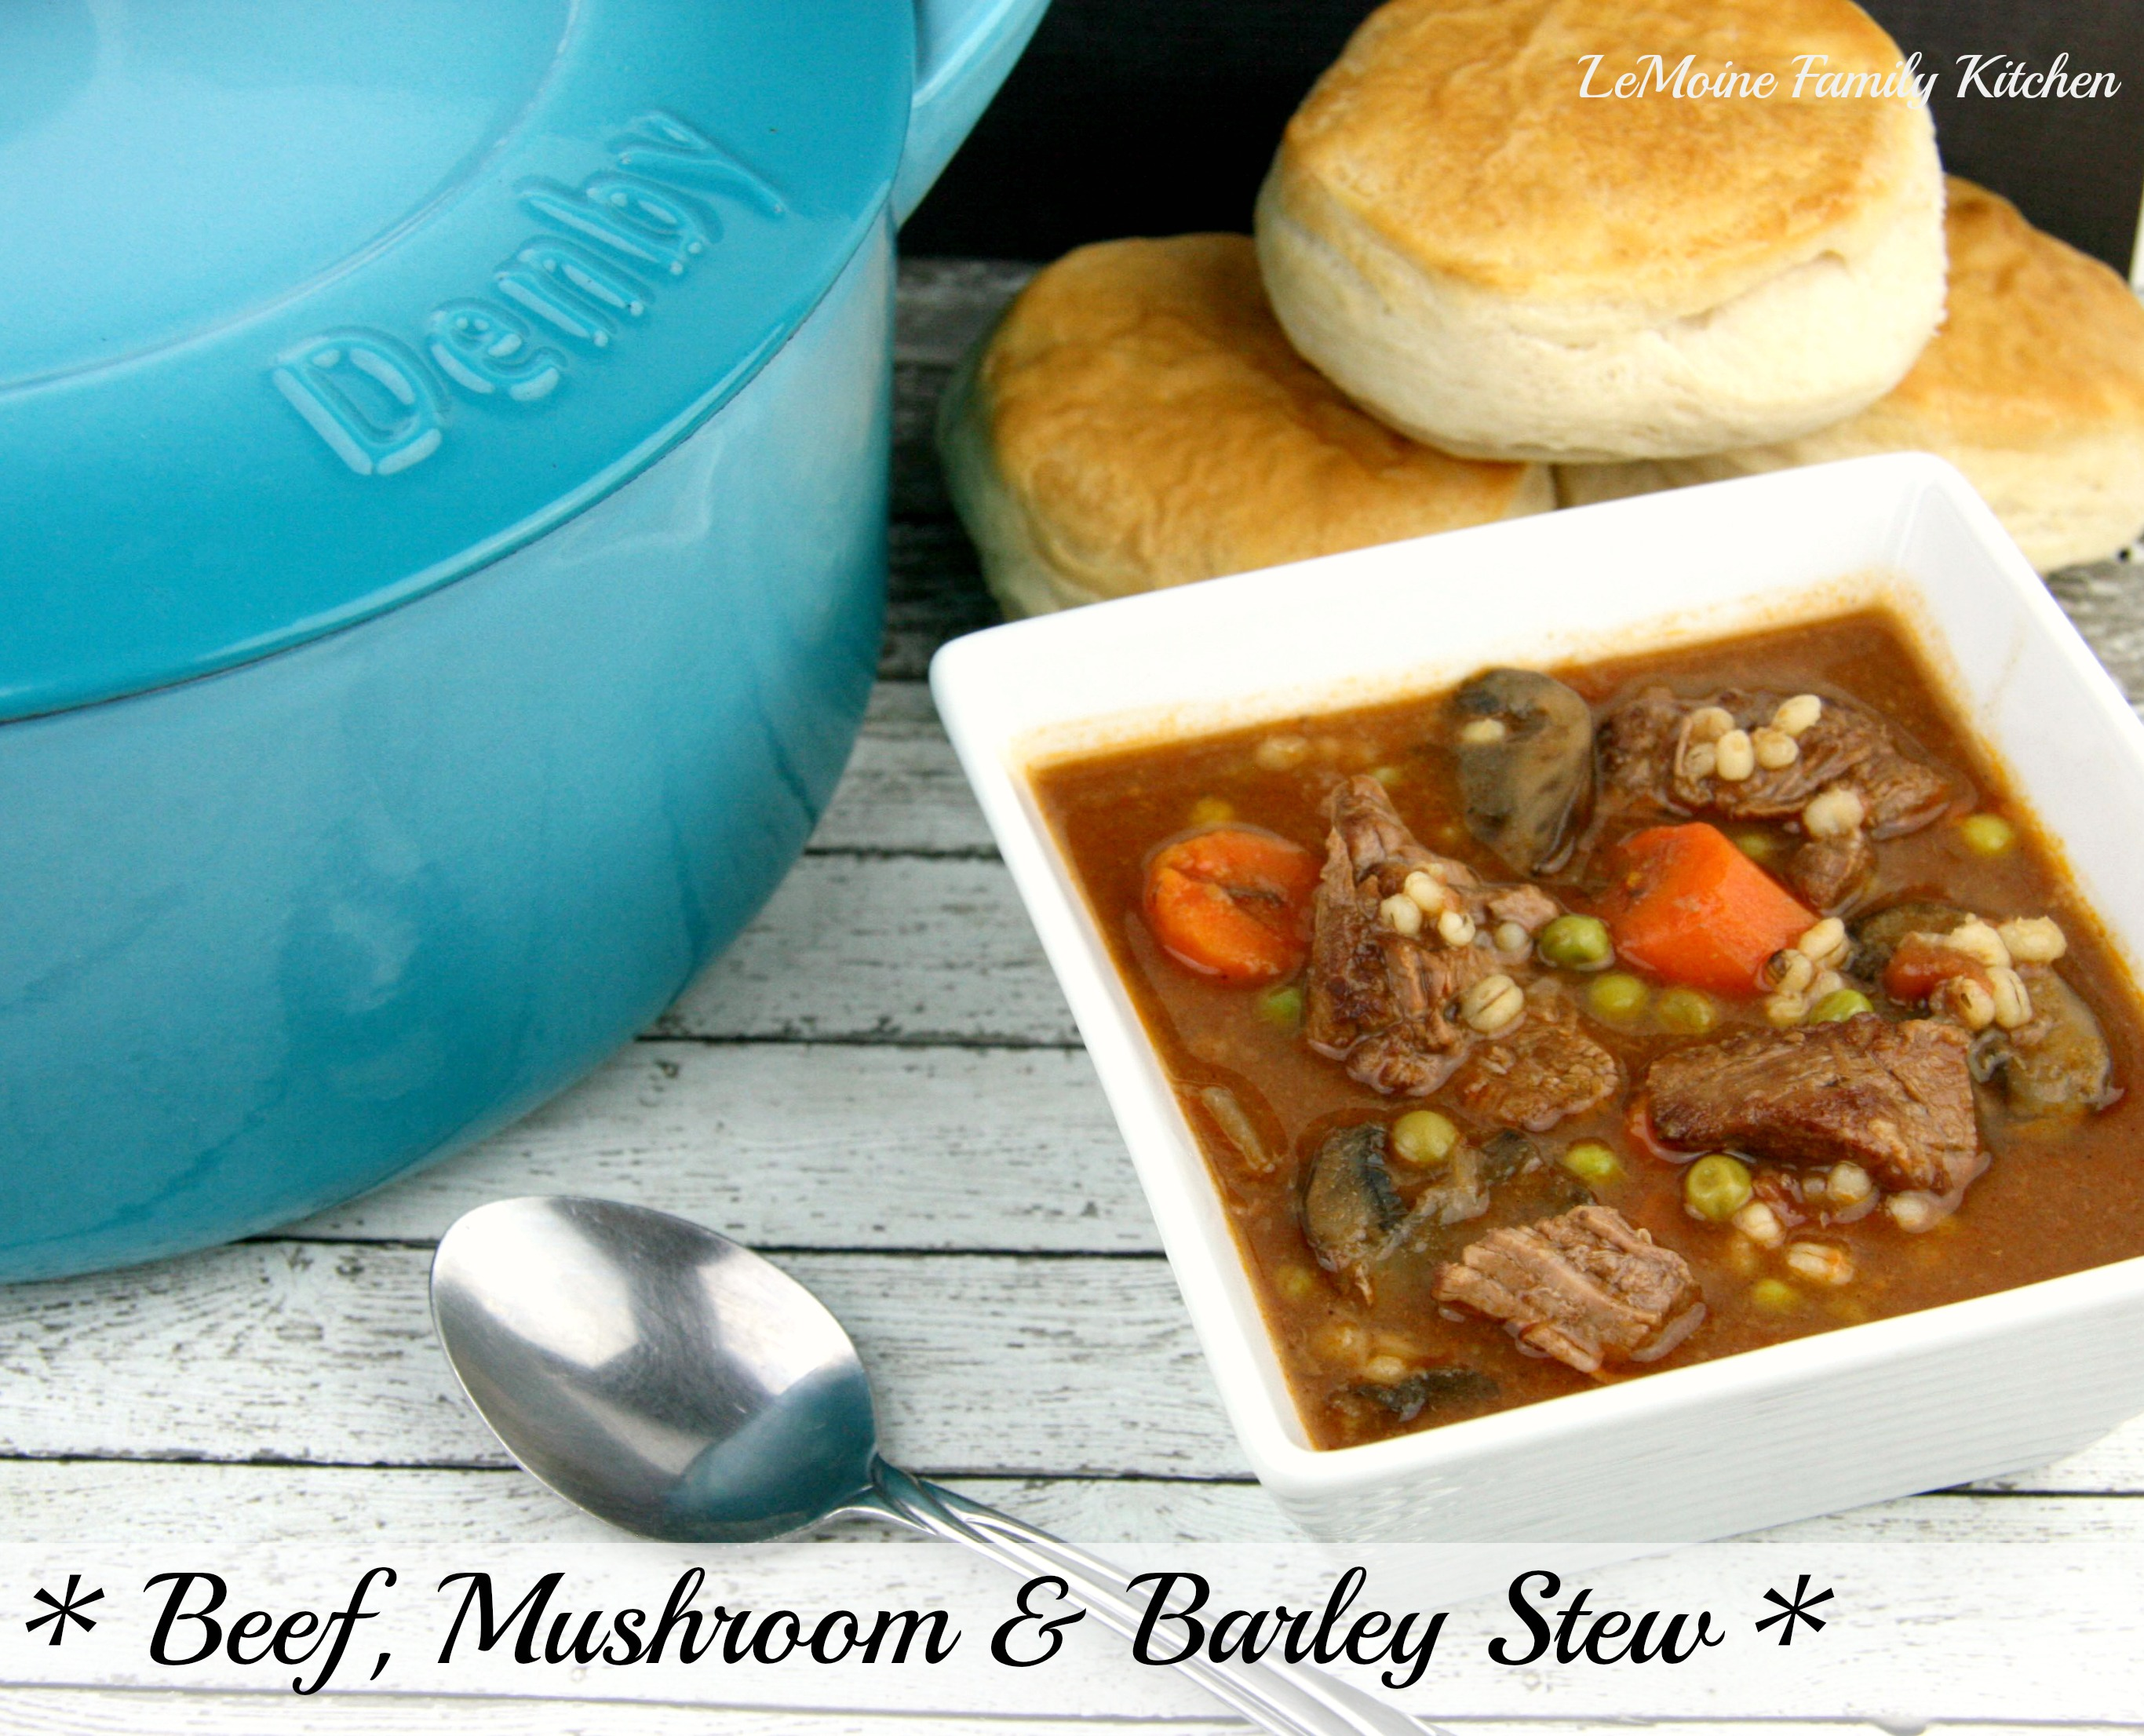 Beef, Mushroom & Barley Stew {Plus my new Denby Cast Iron Casserole Pot} | LeMoine Family Kitchen #stew #beef #beefandbarley #winter #comfortfood #denby